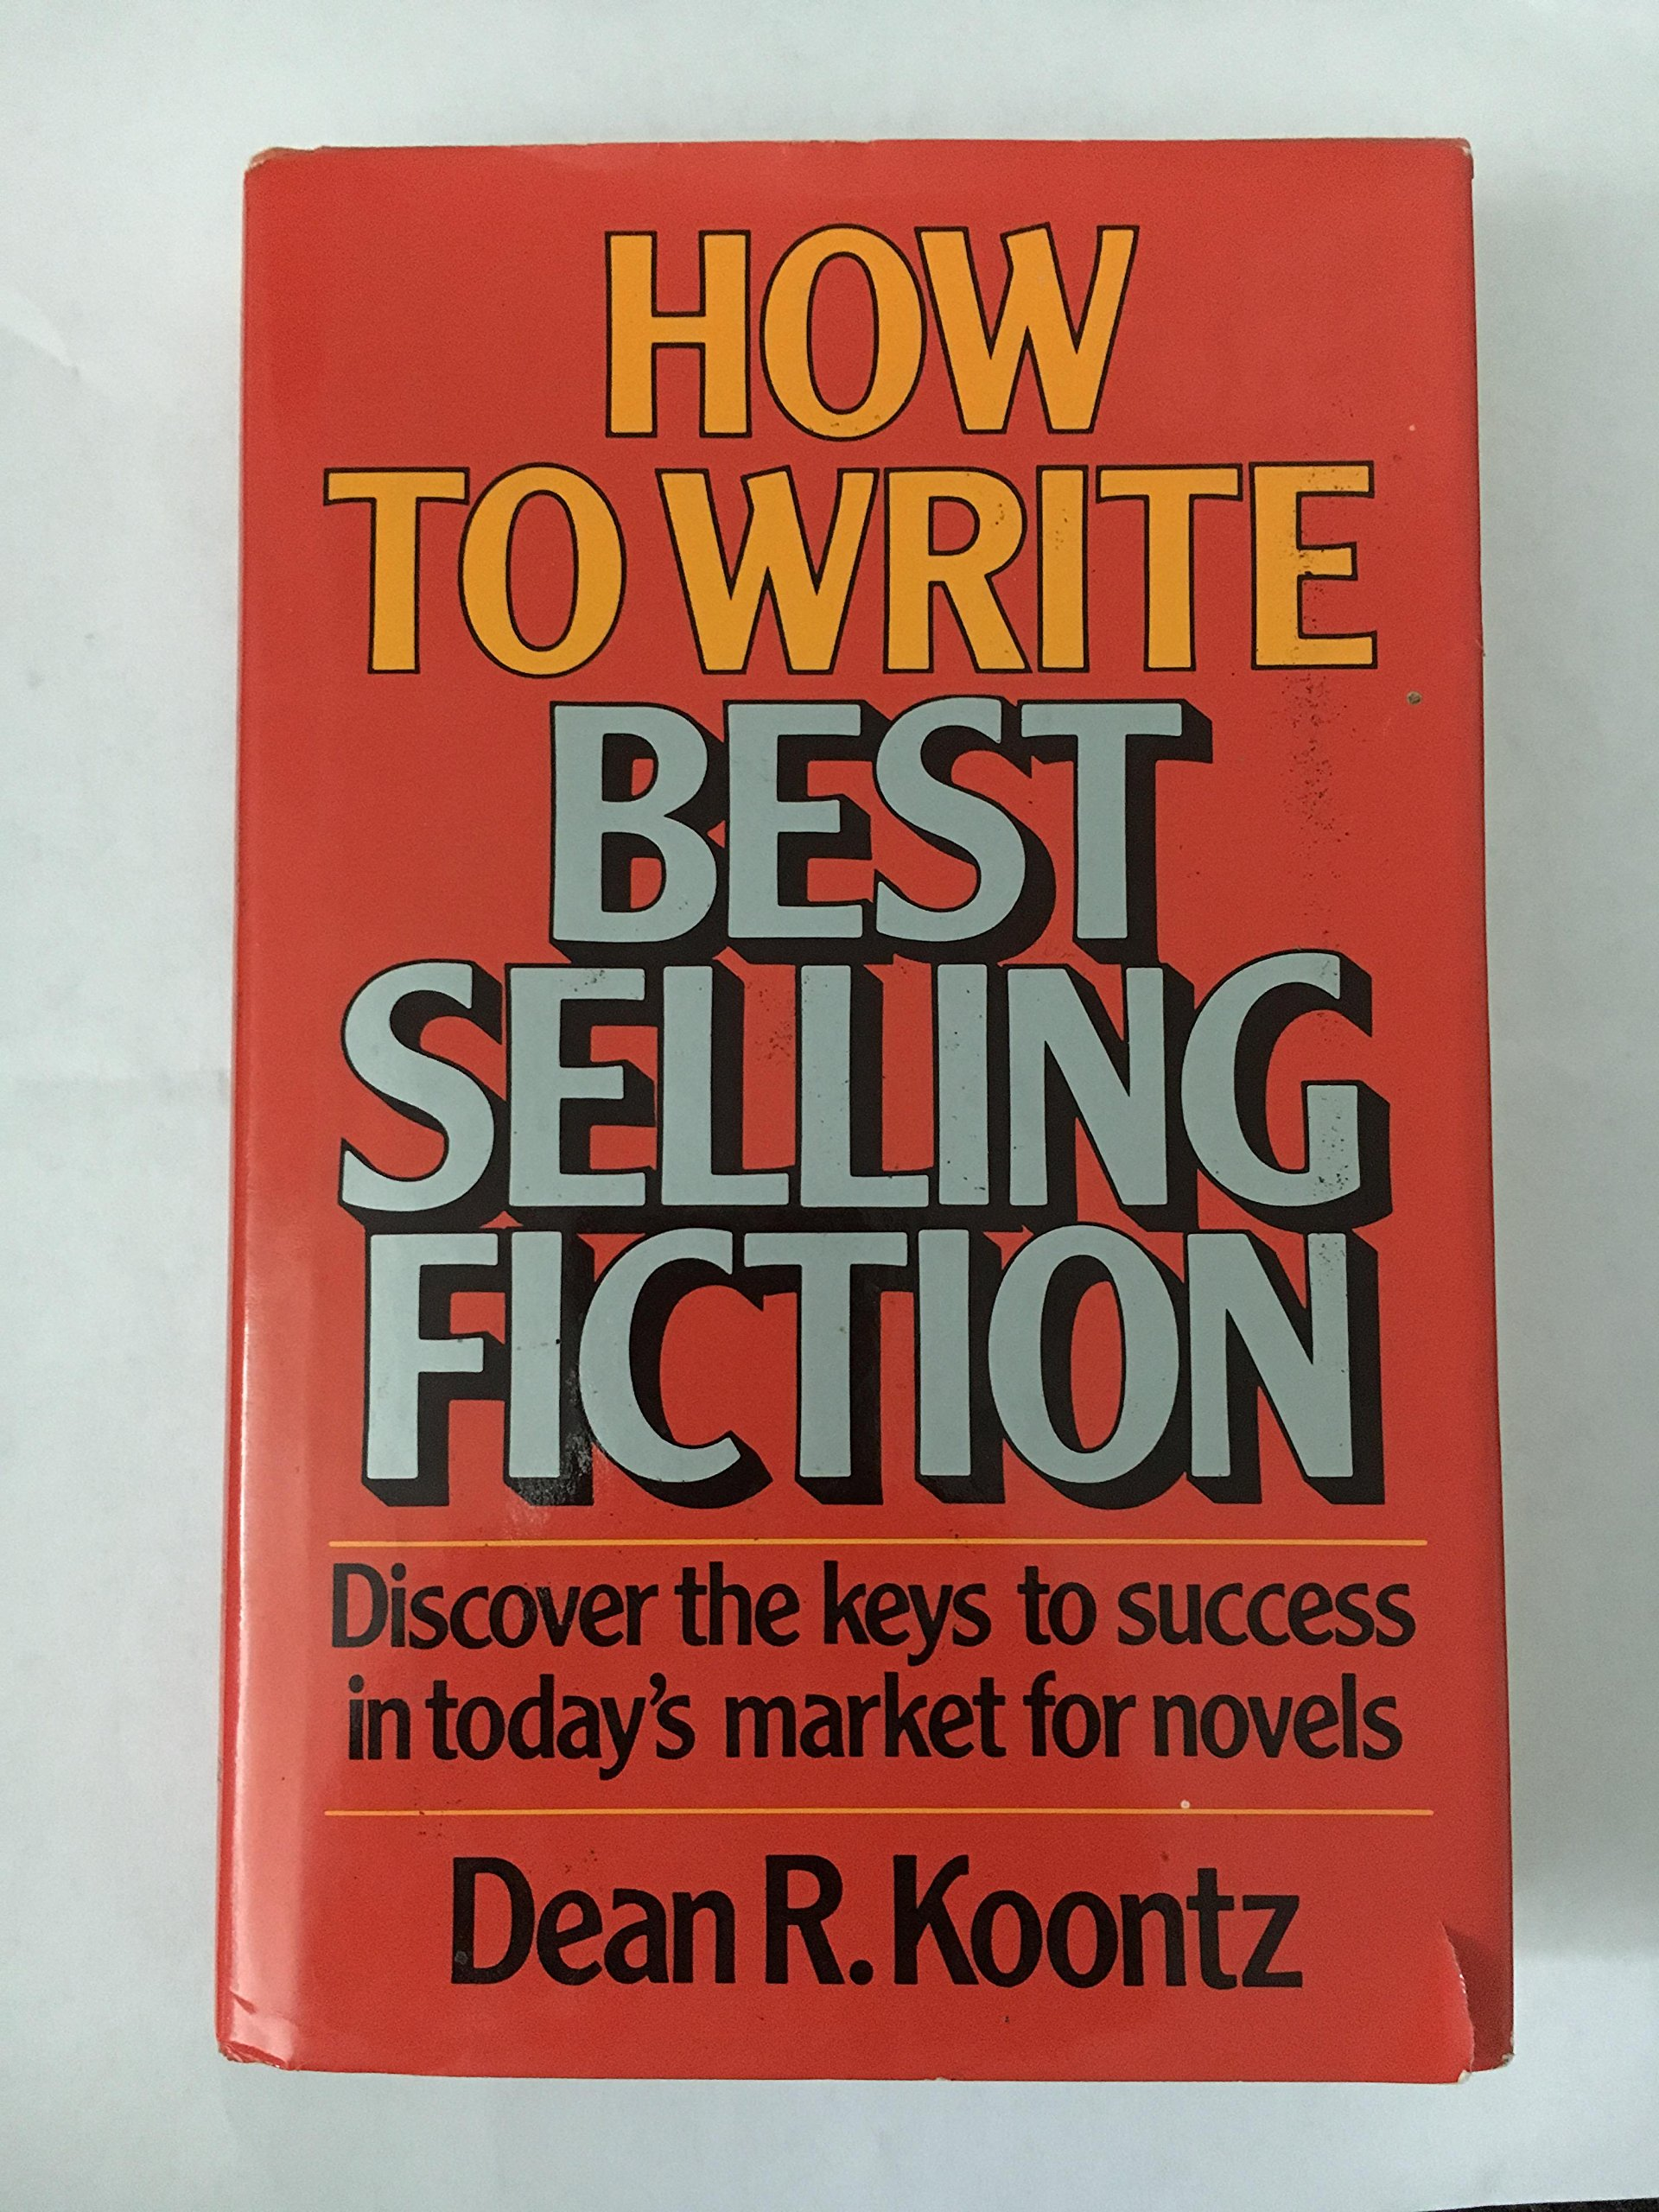 how to write best selling fiction dean r koontz 9780898790450how to write best selling fiction dean r koontz 9780898790450 amazon com books